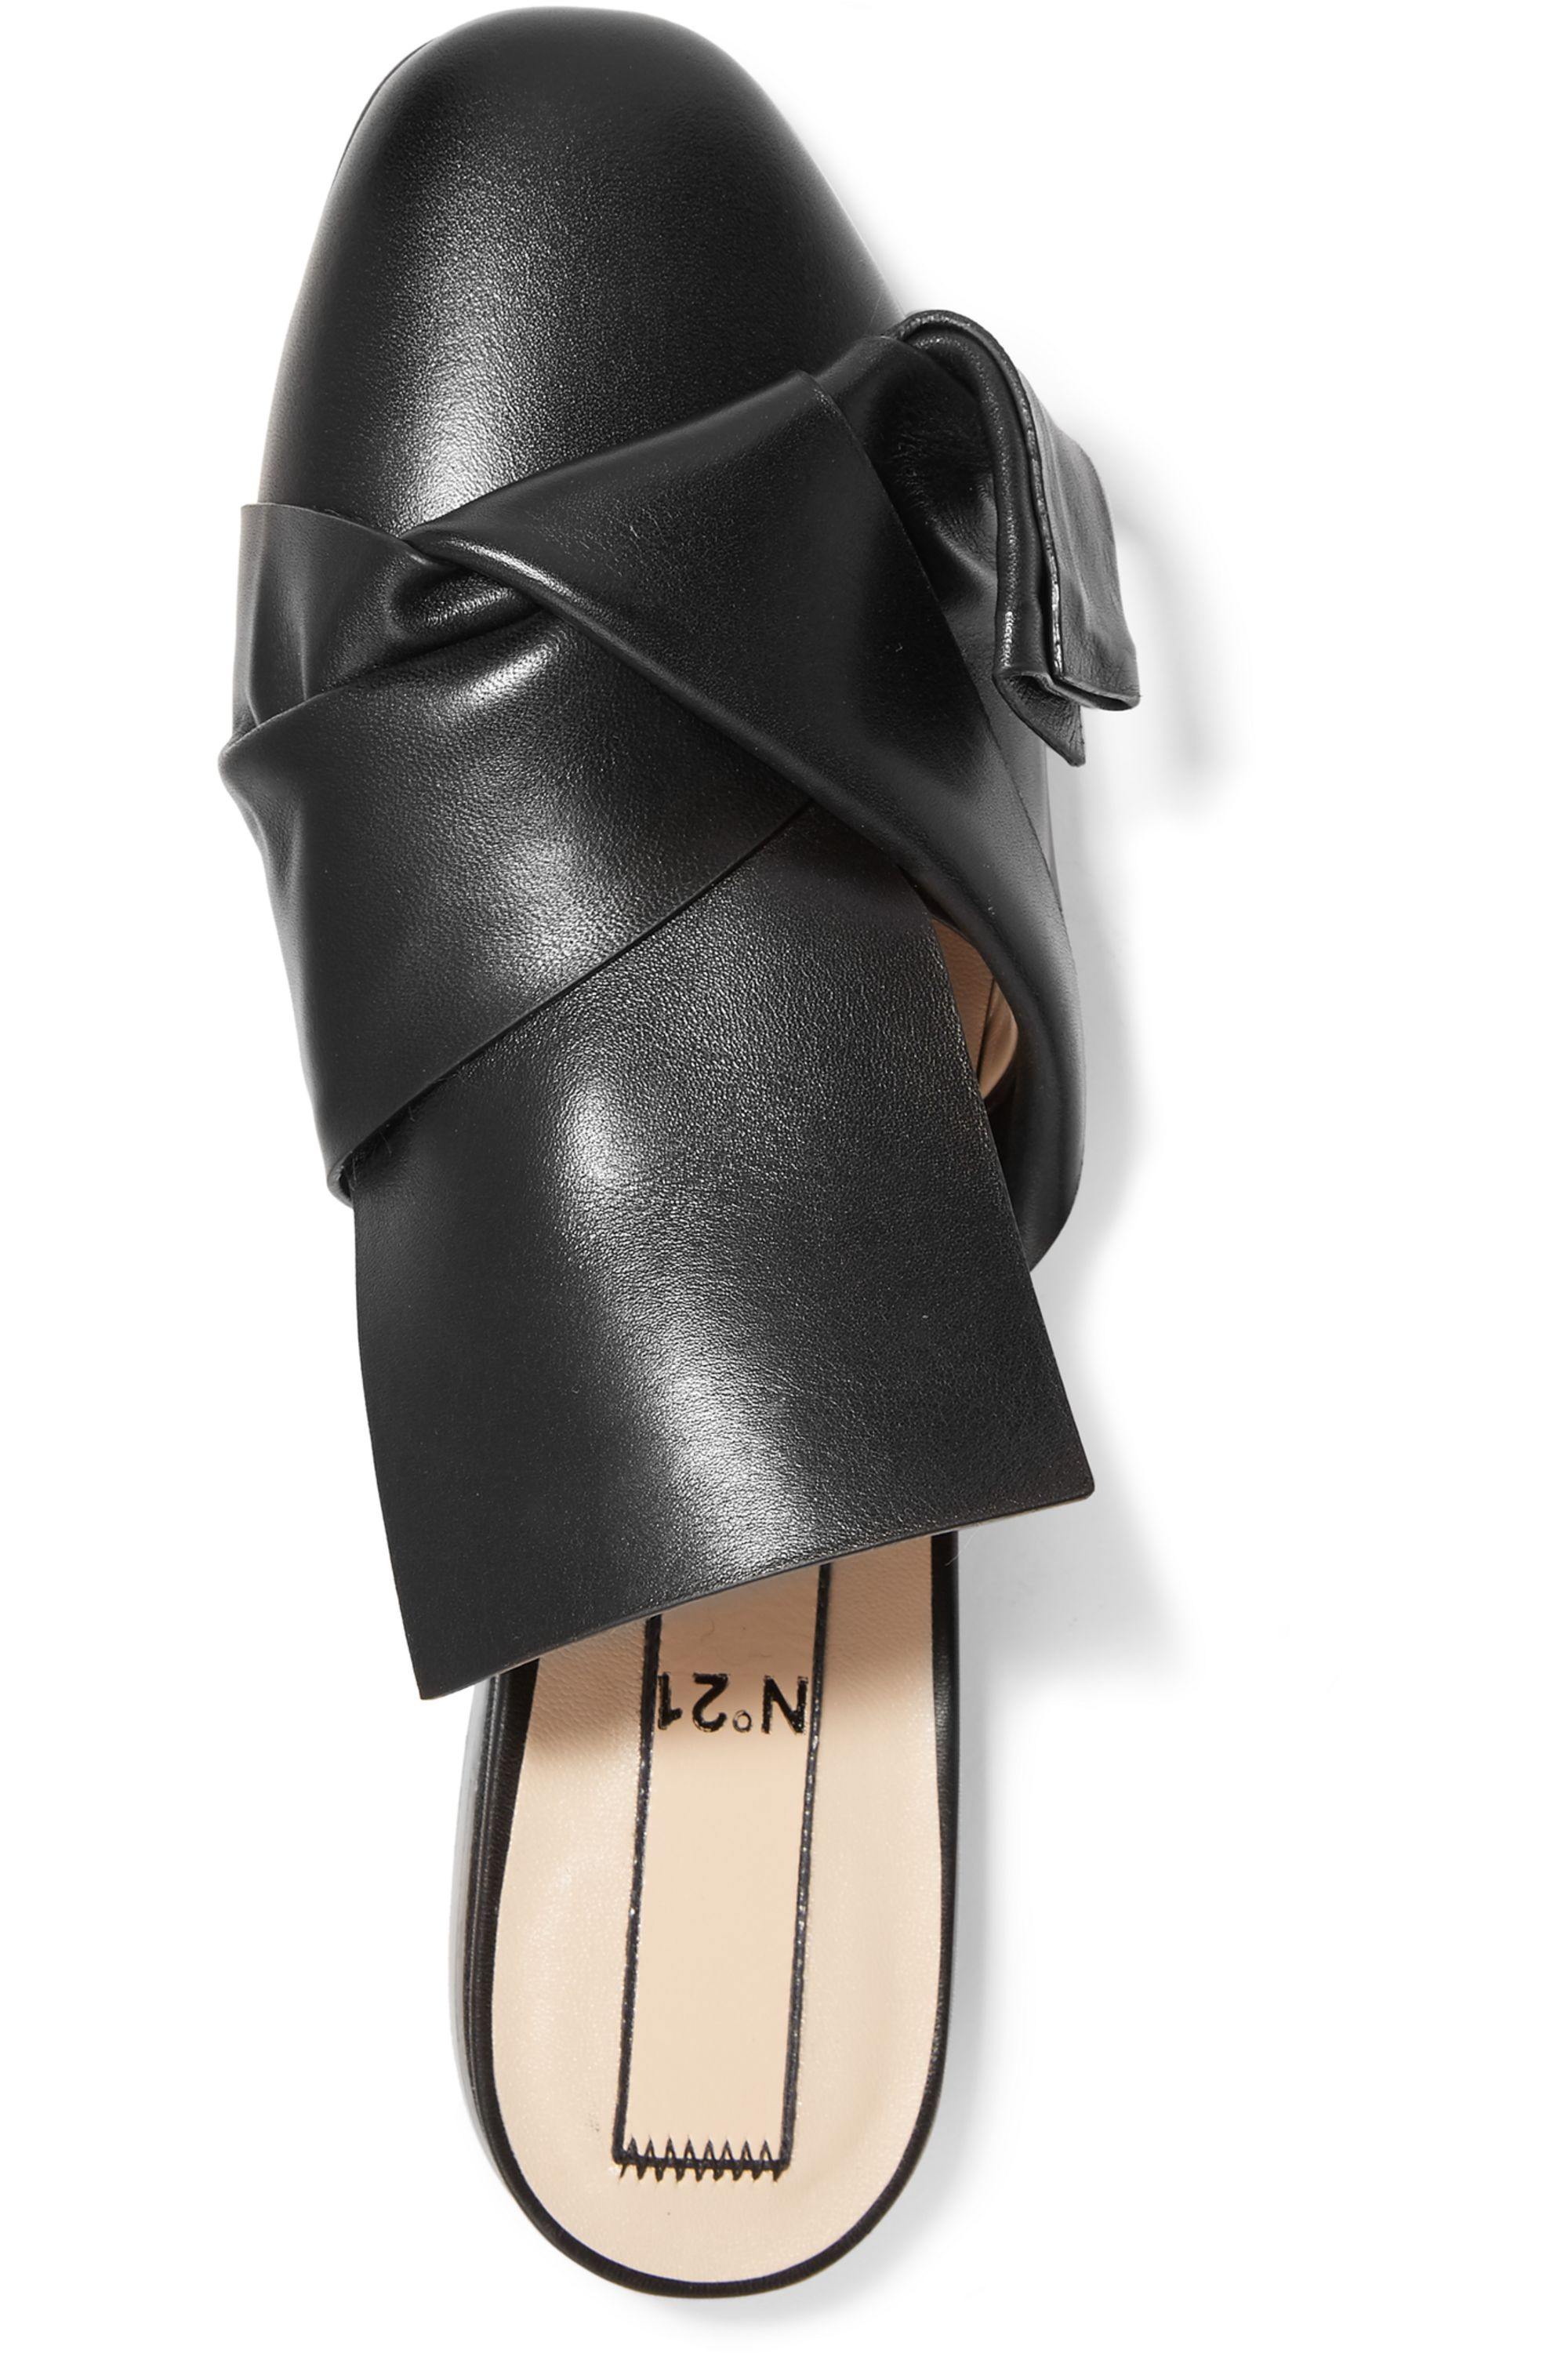 No. 21 Knotted leather slippers